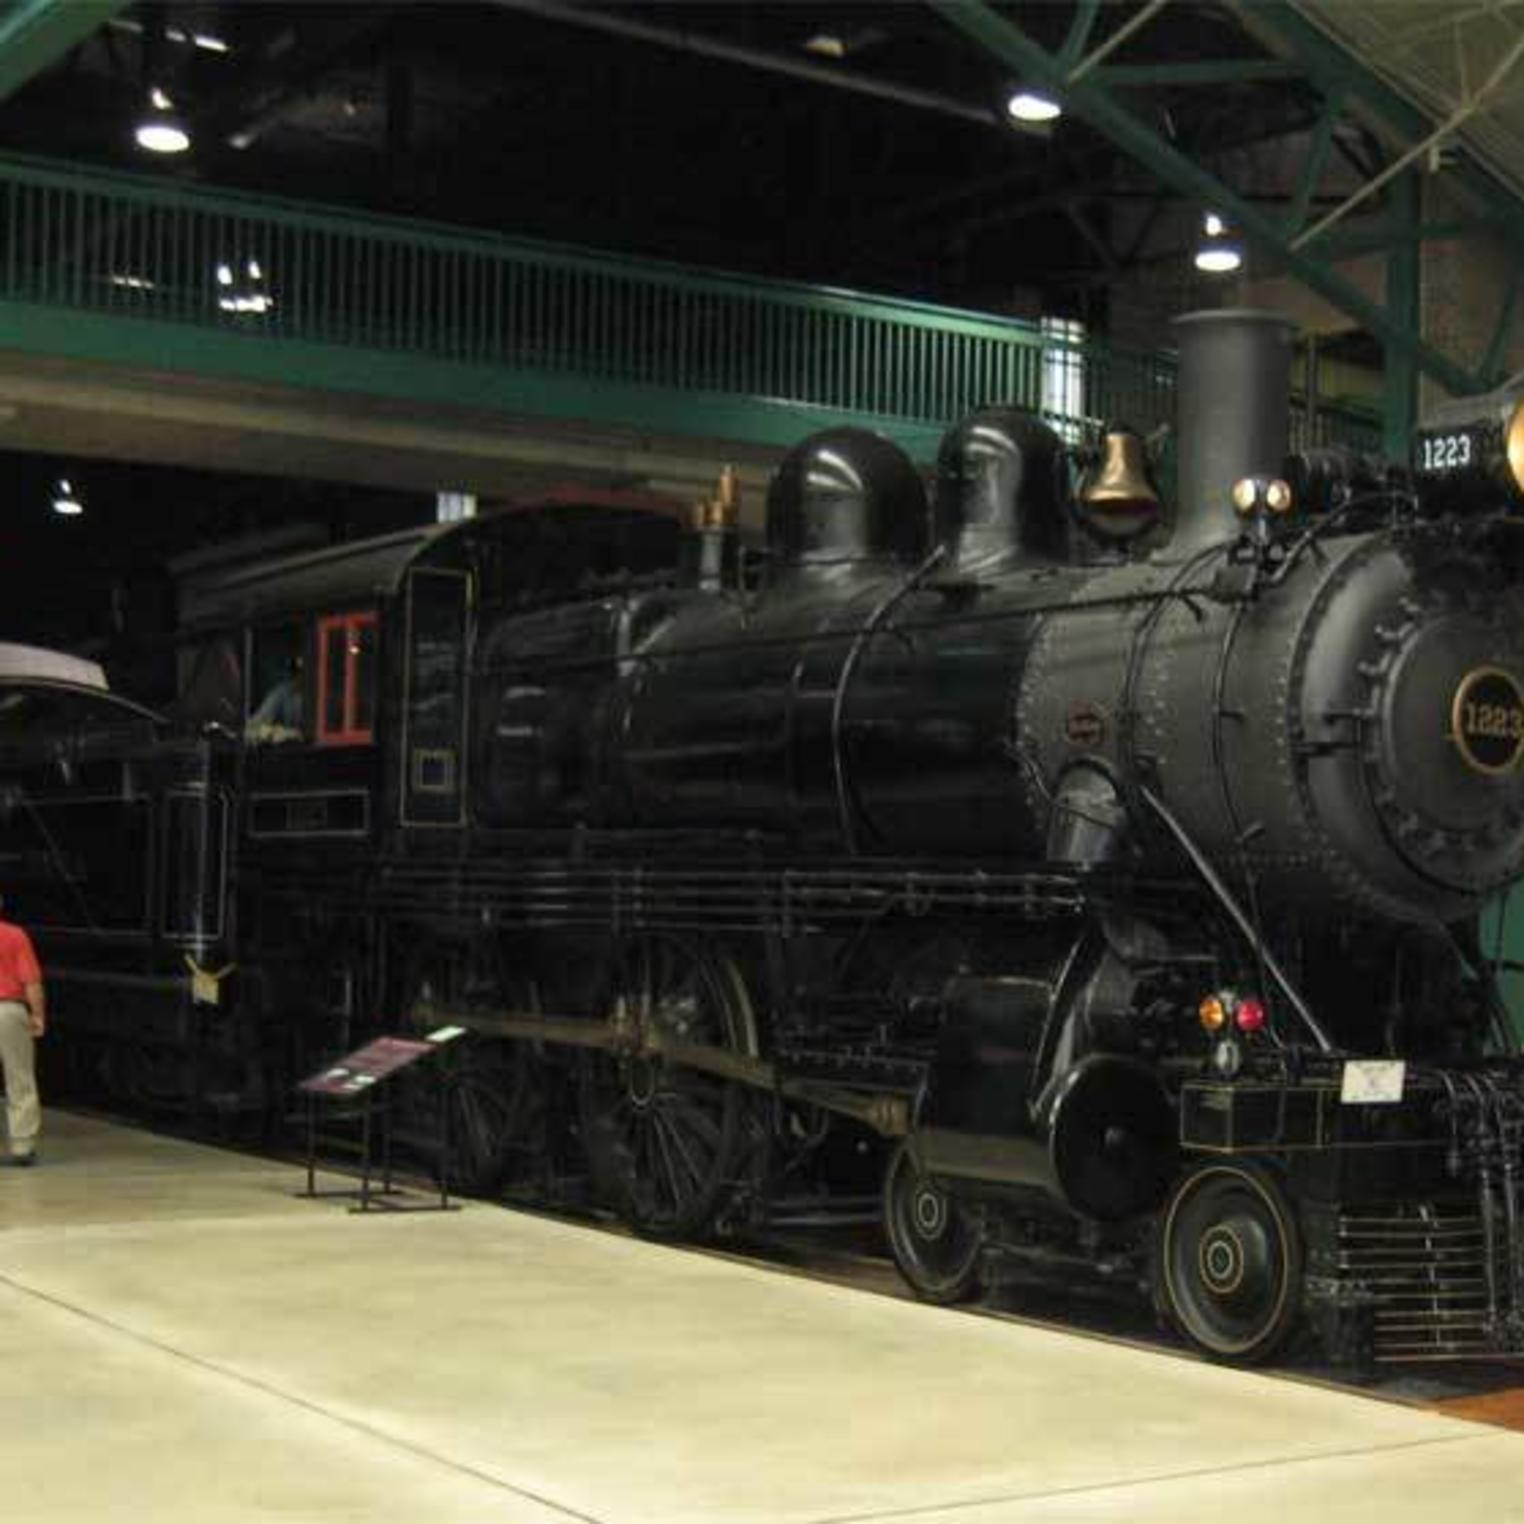 The Railroad Museum of PA